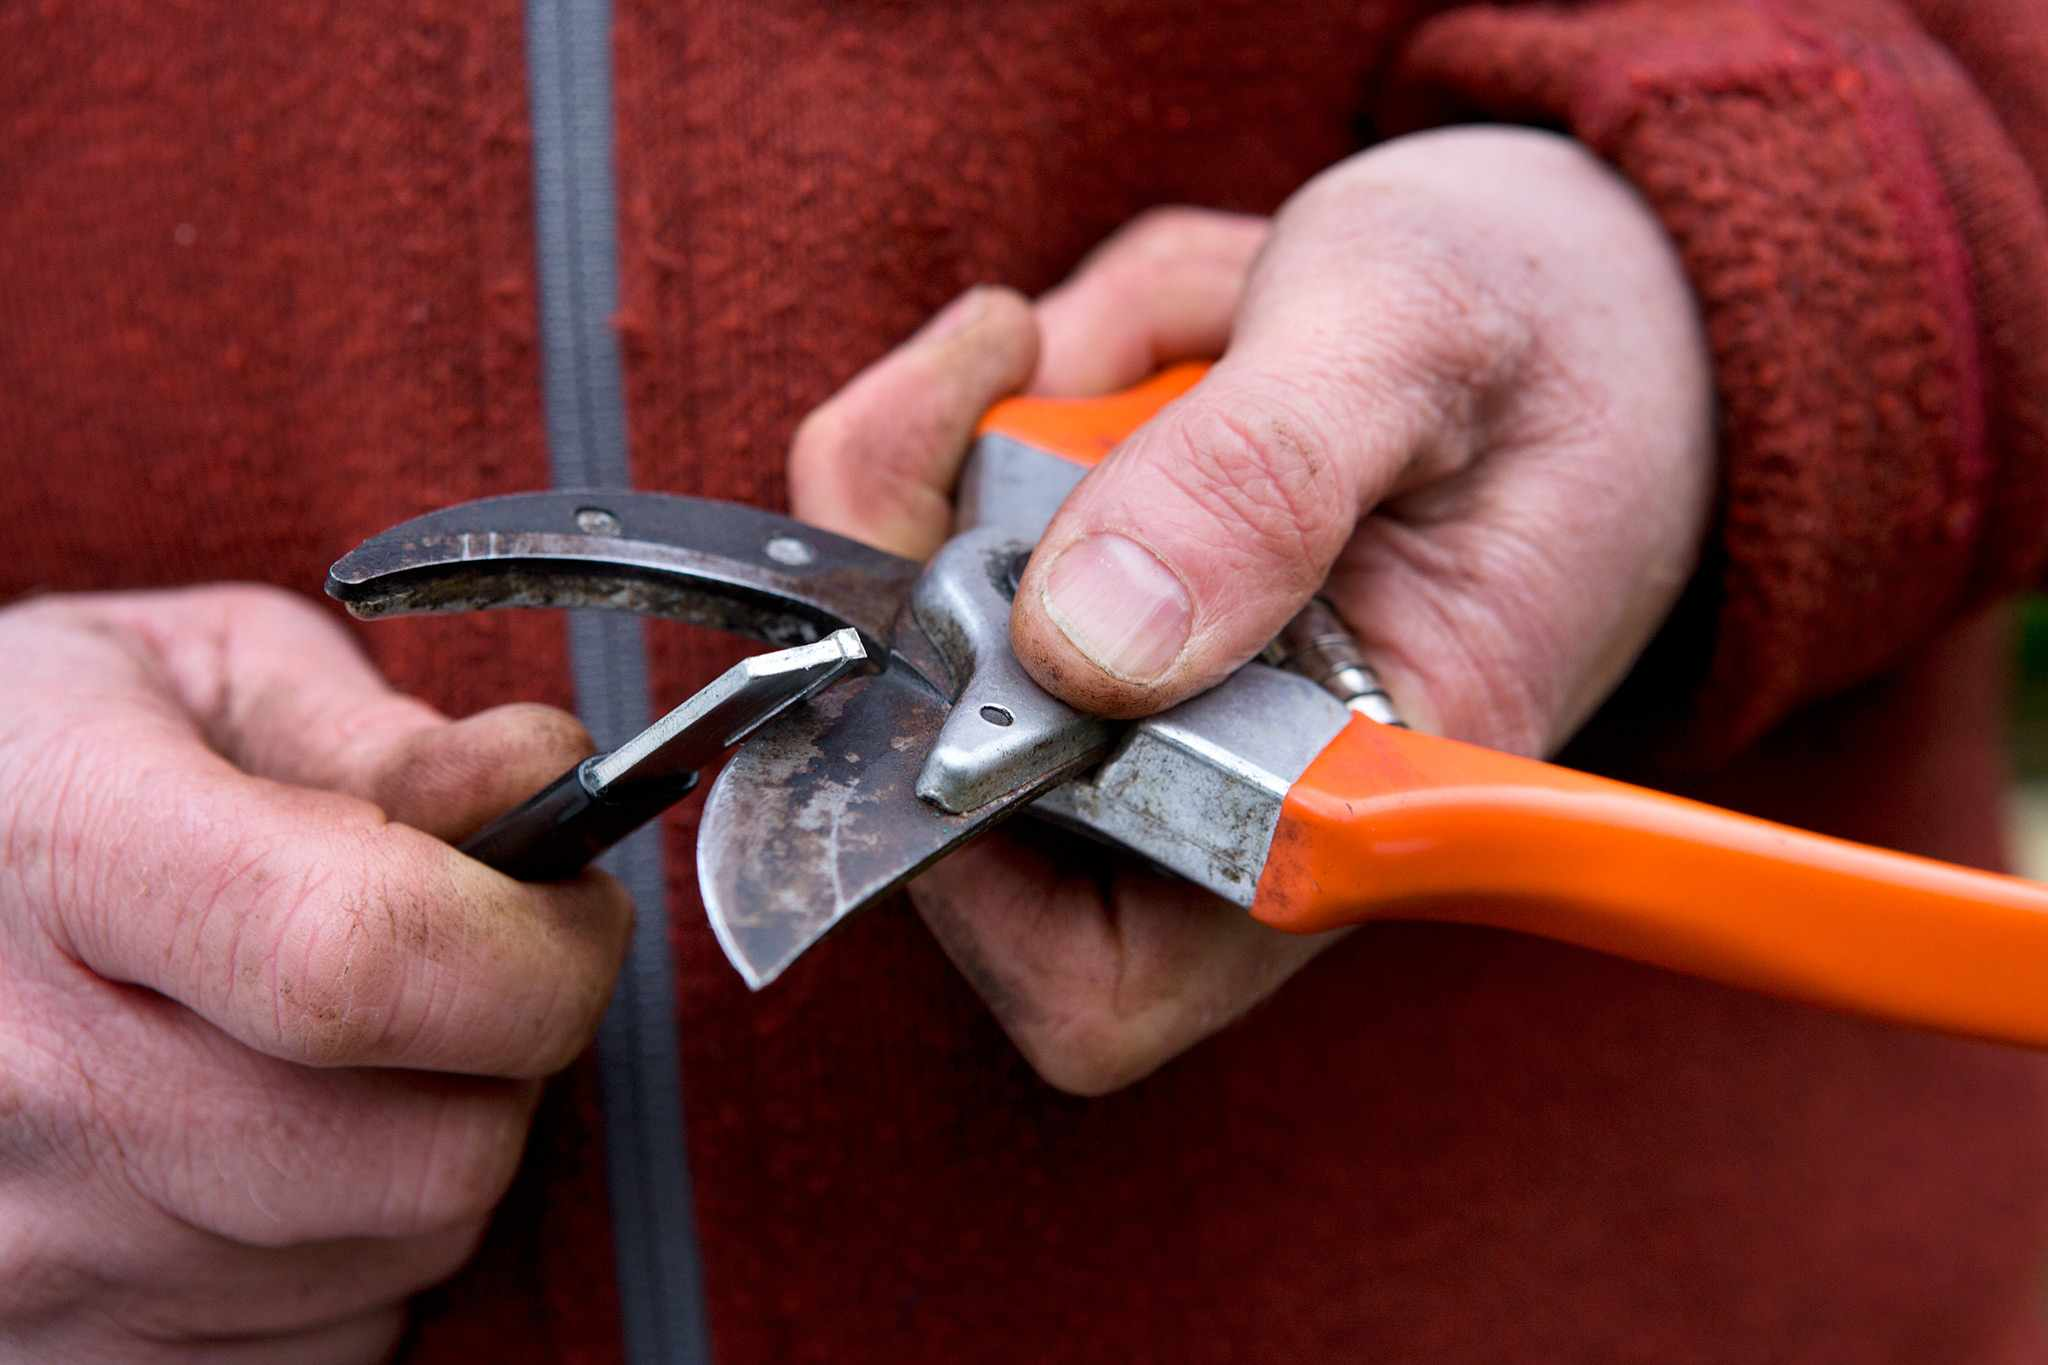 Maintaining secateurs